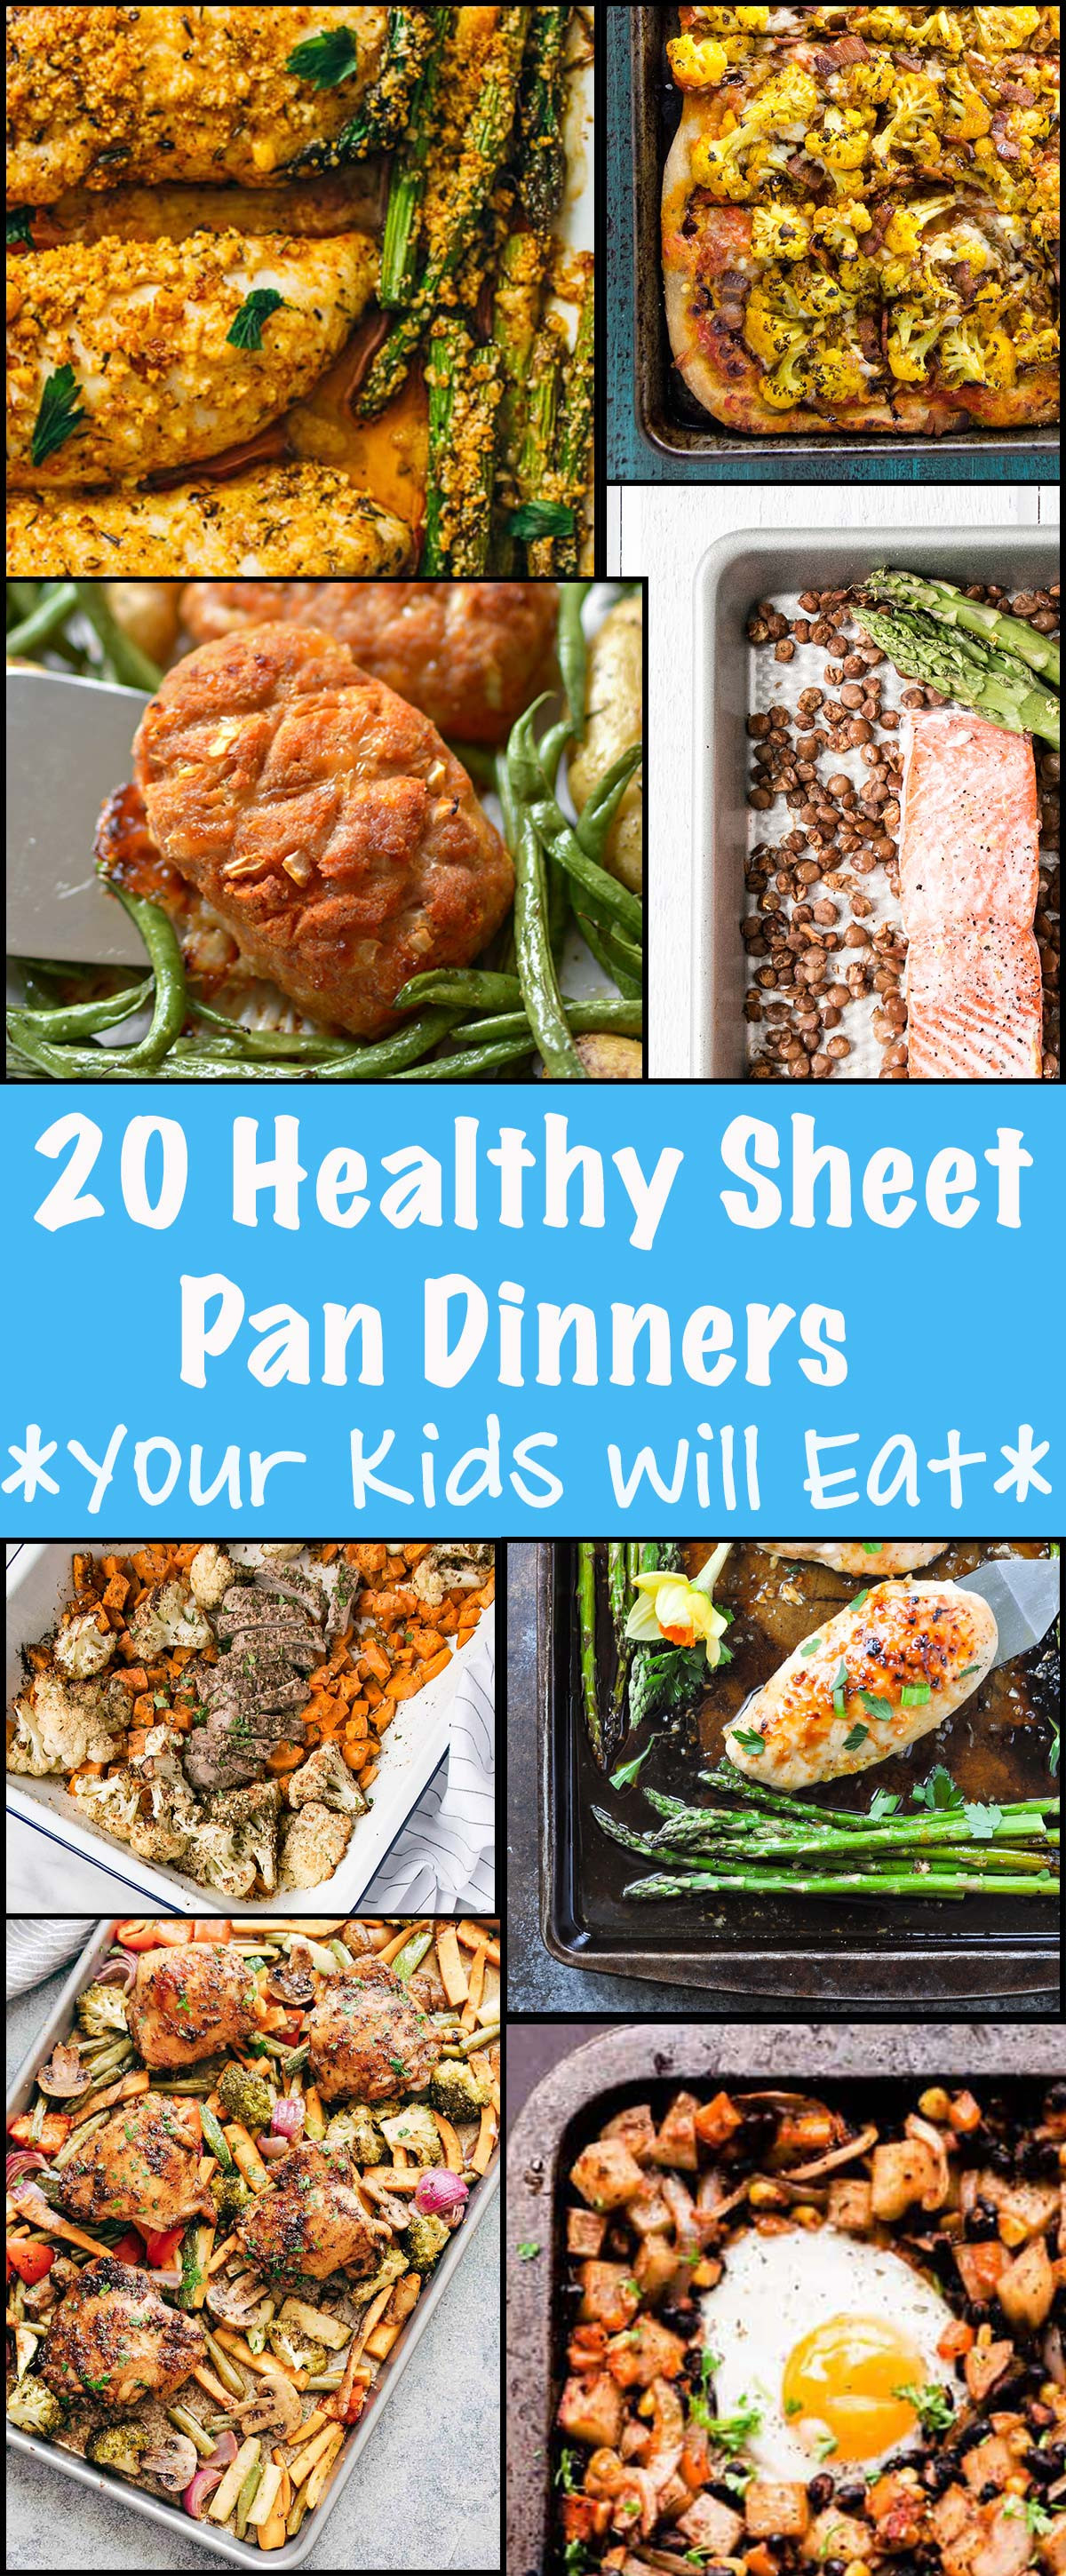 Healthy Dinners Kids Will Eat  20 Healthy Sheet Pan Dinners Your Kids Will Actually Eat